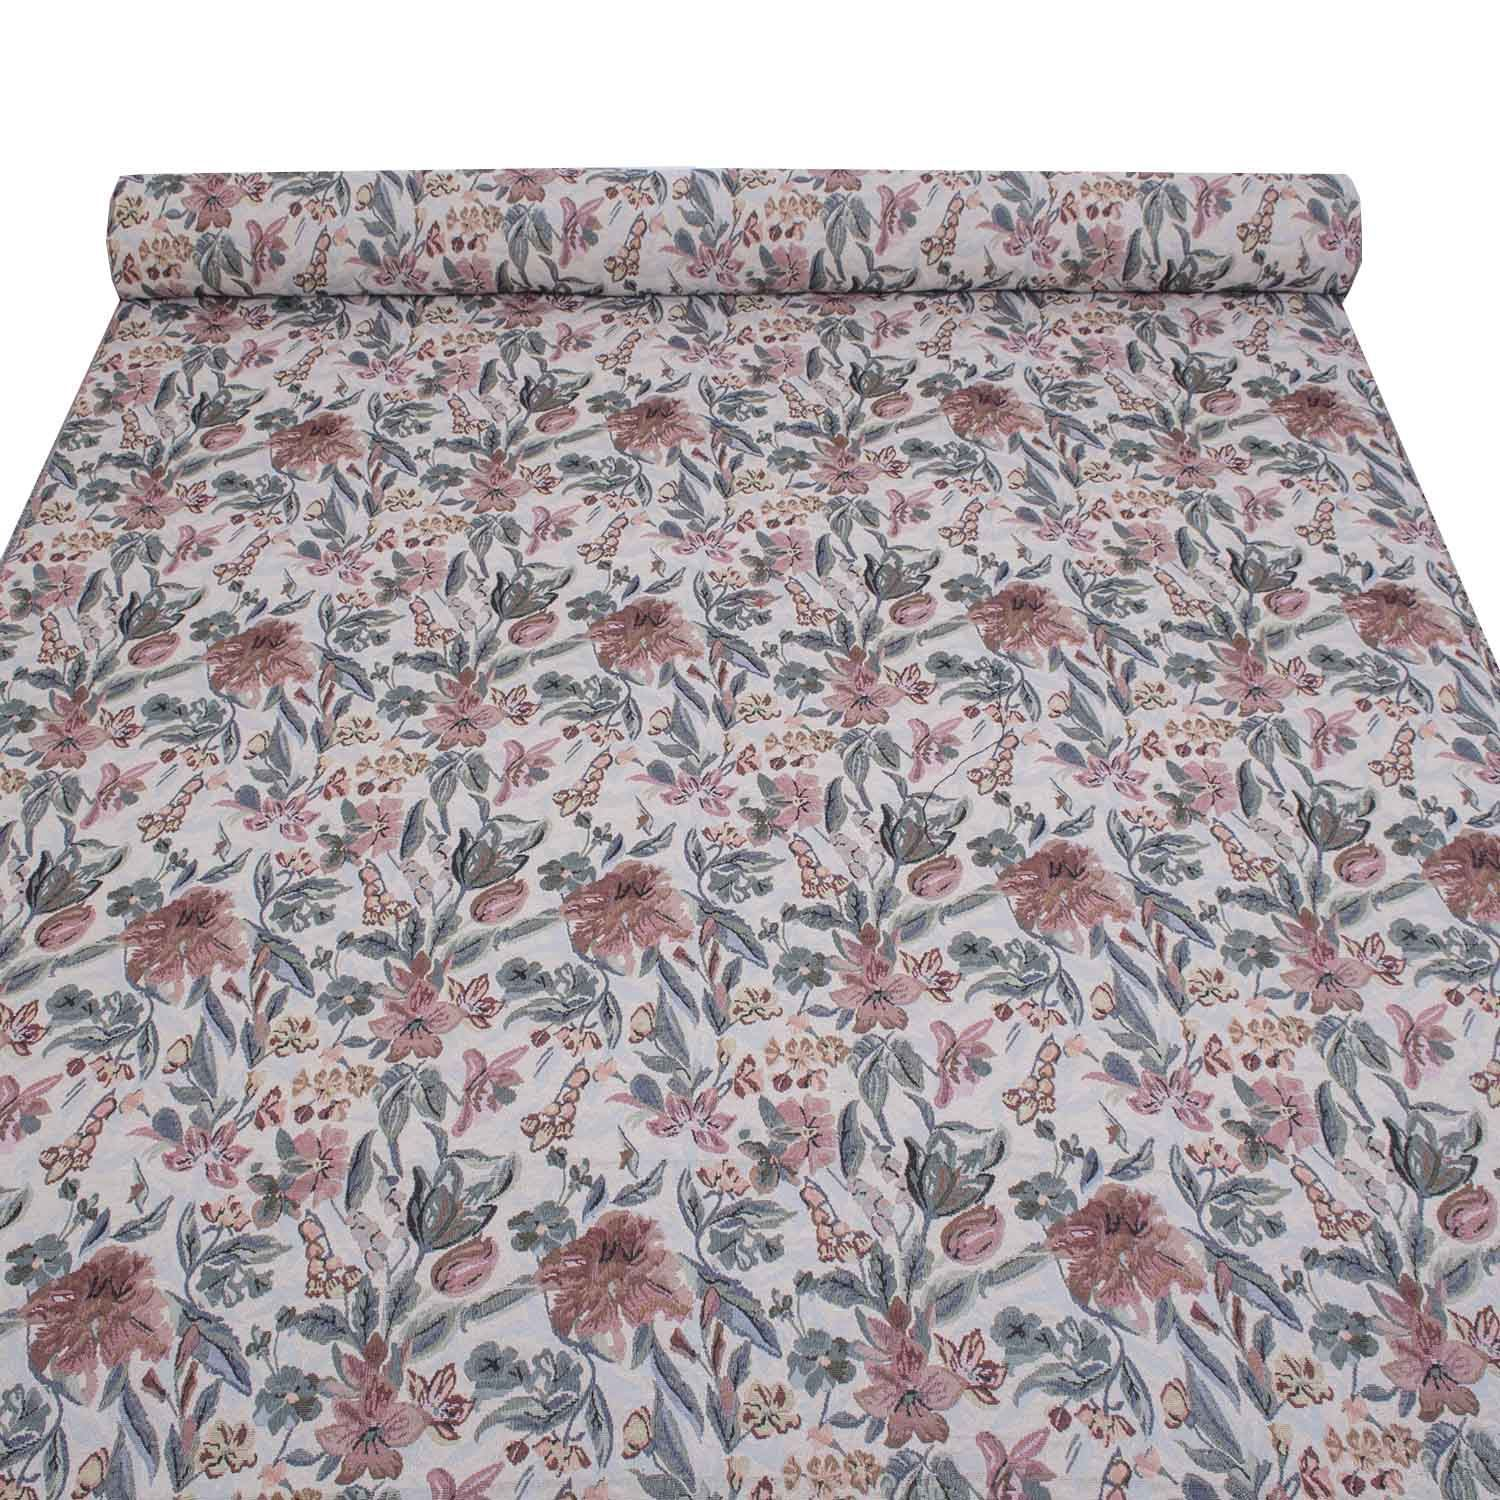 TRADITIONAL FLORAL FLOWERS TAPESTRY SOFT UPHOLSTERY CURTAINS SOFA